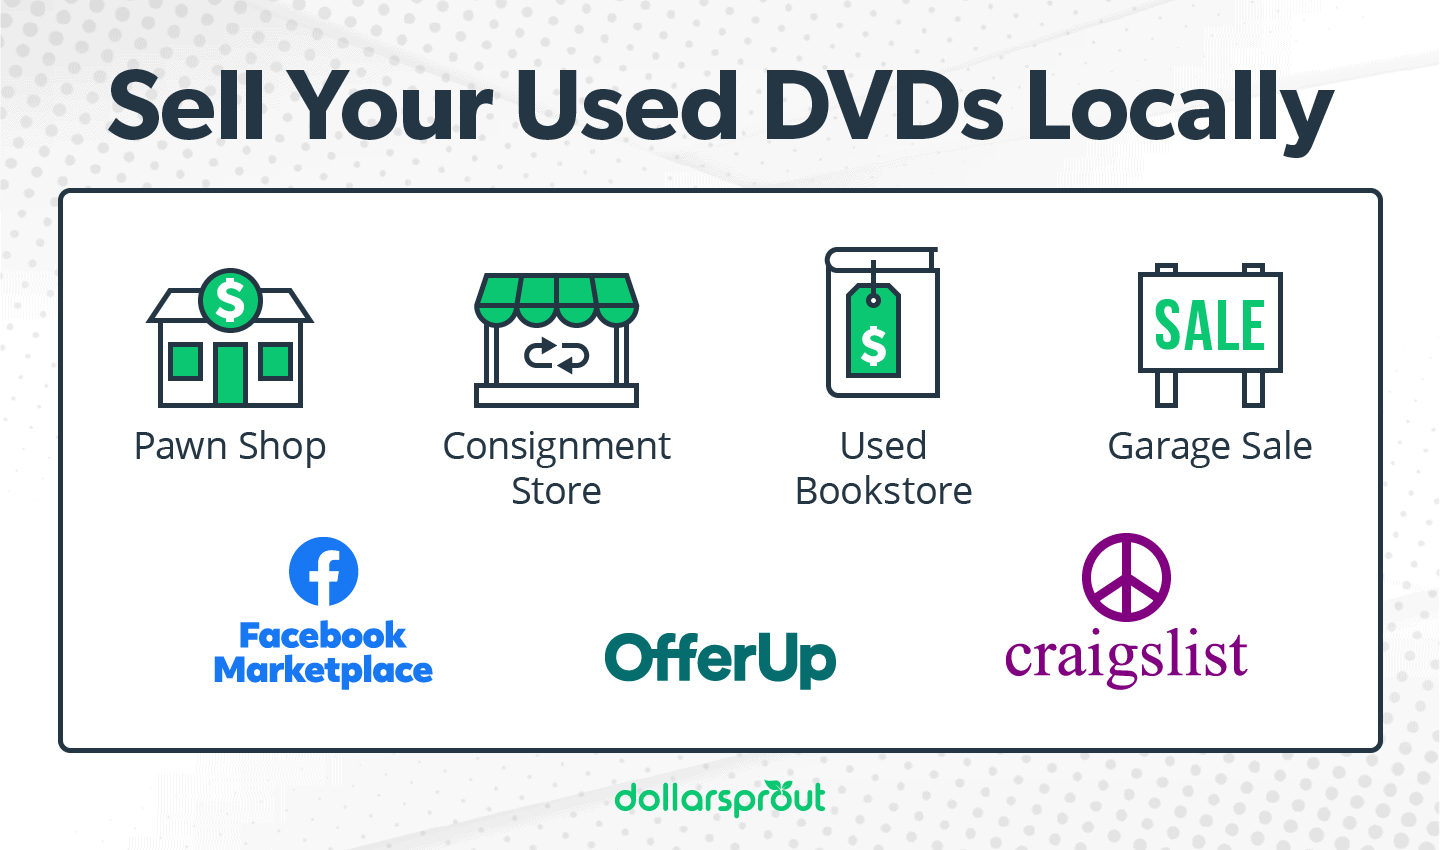 Sell Your Used DVDs Locally